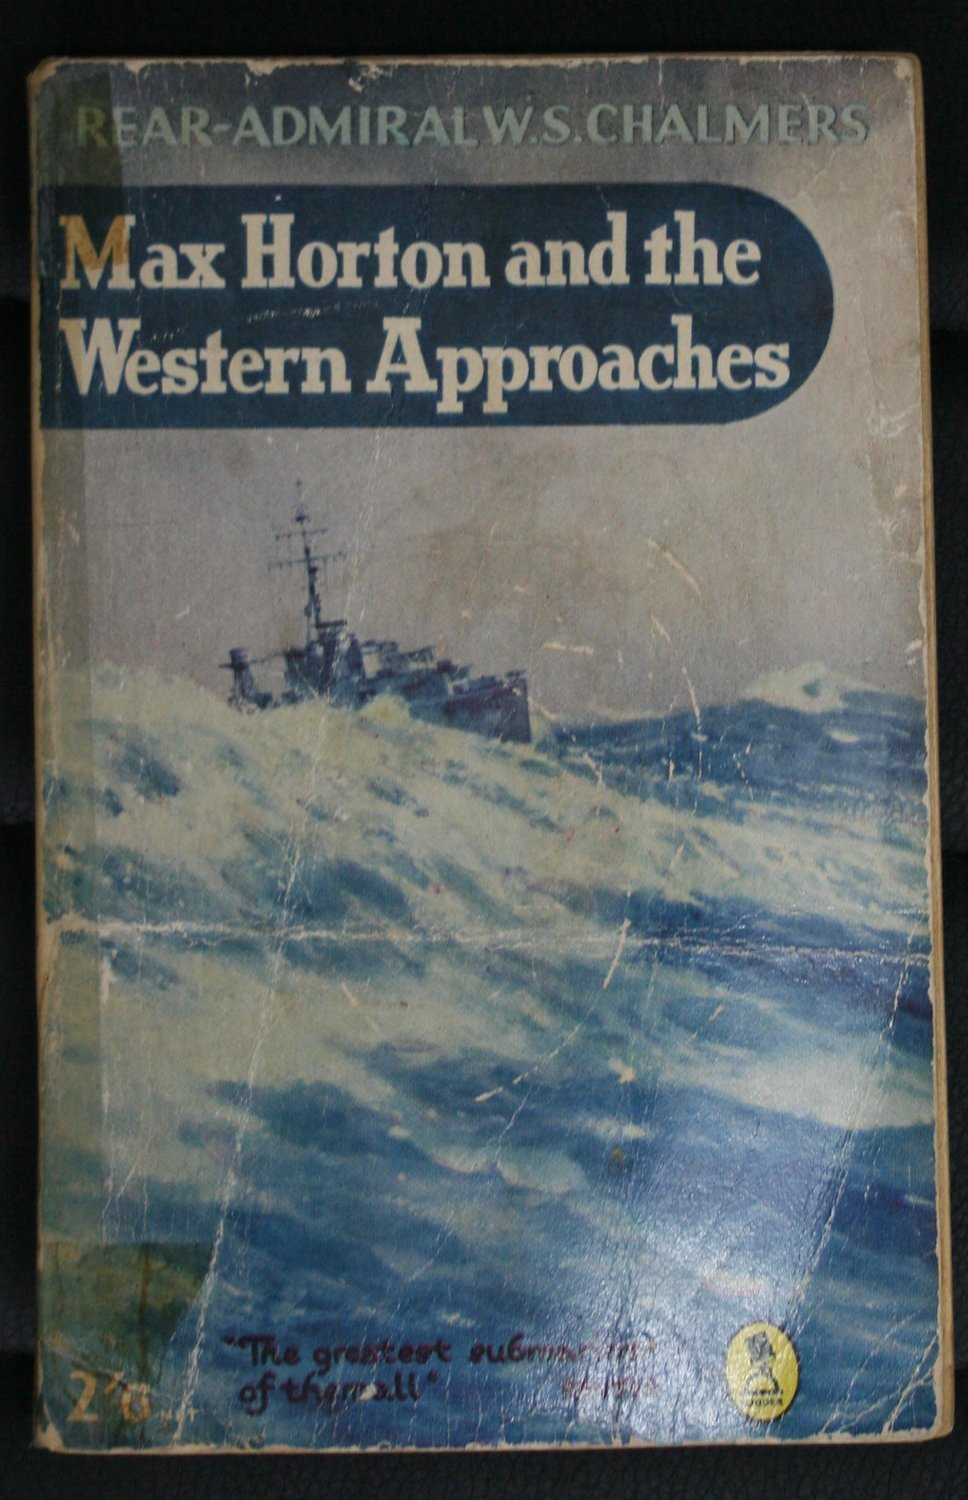 Max Horton and the Western Approaches